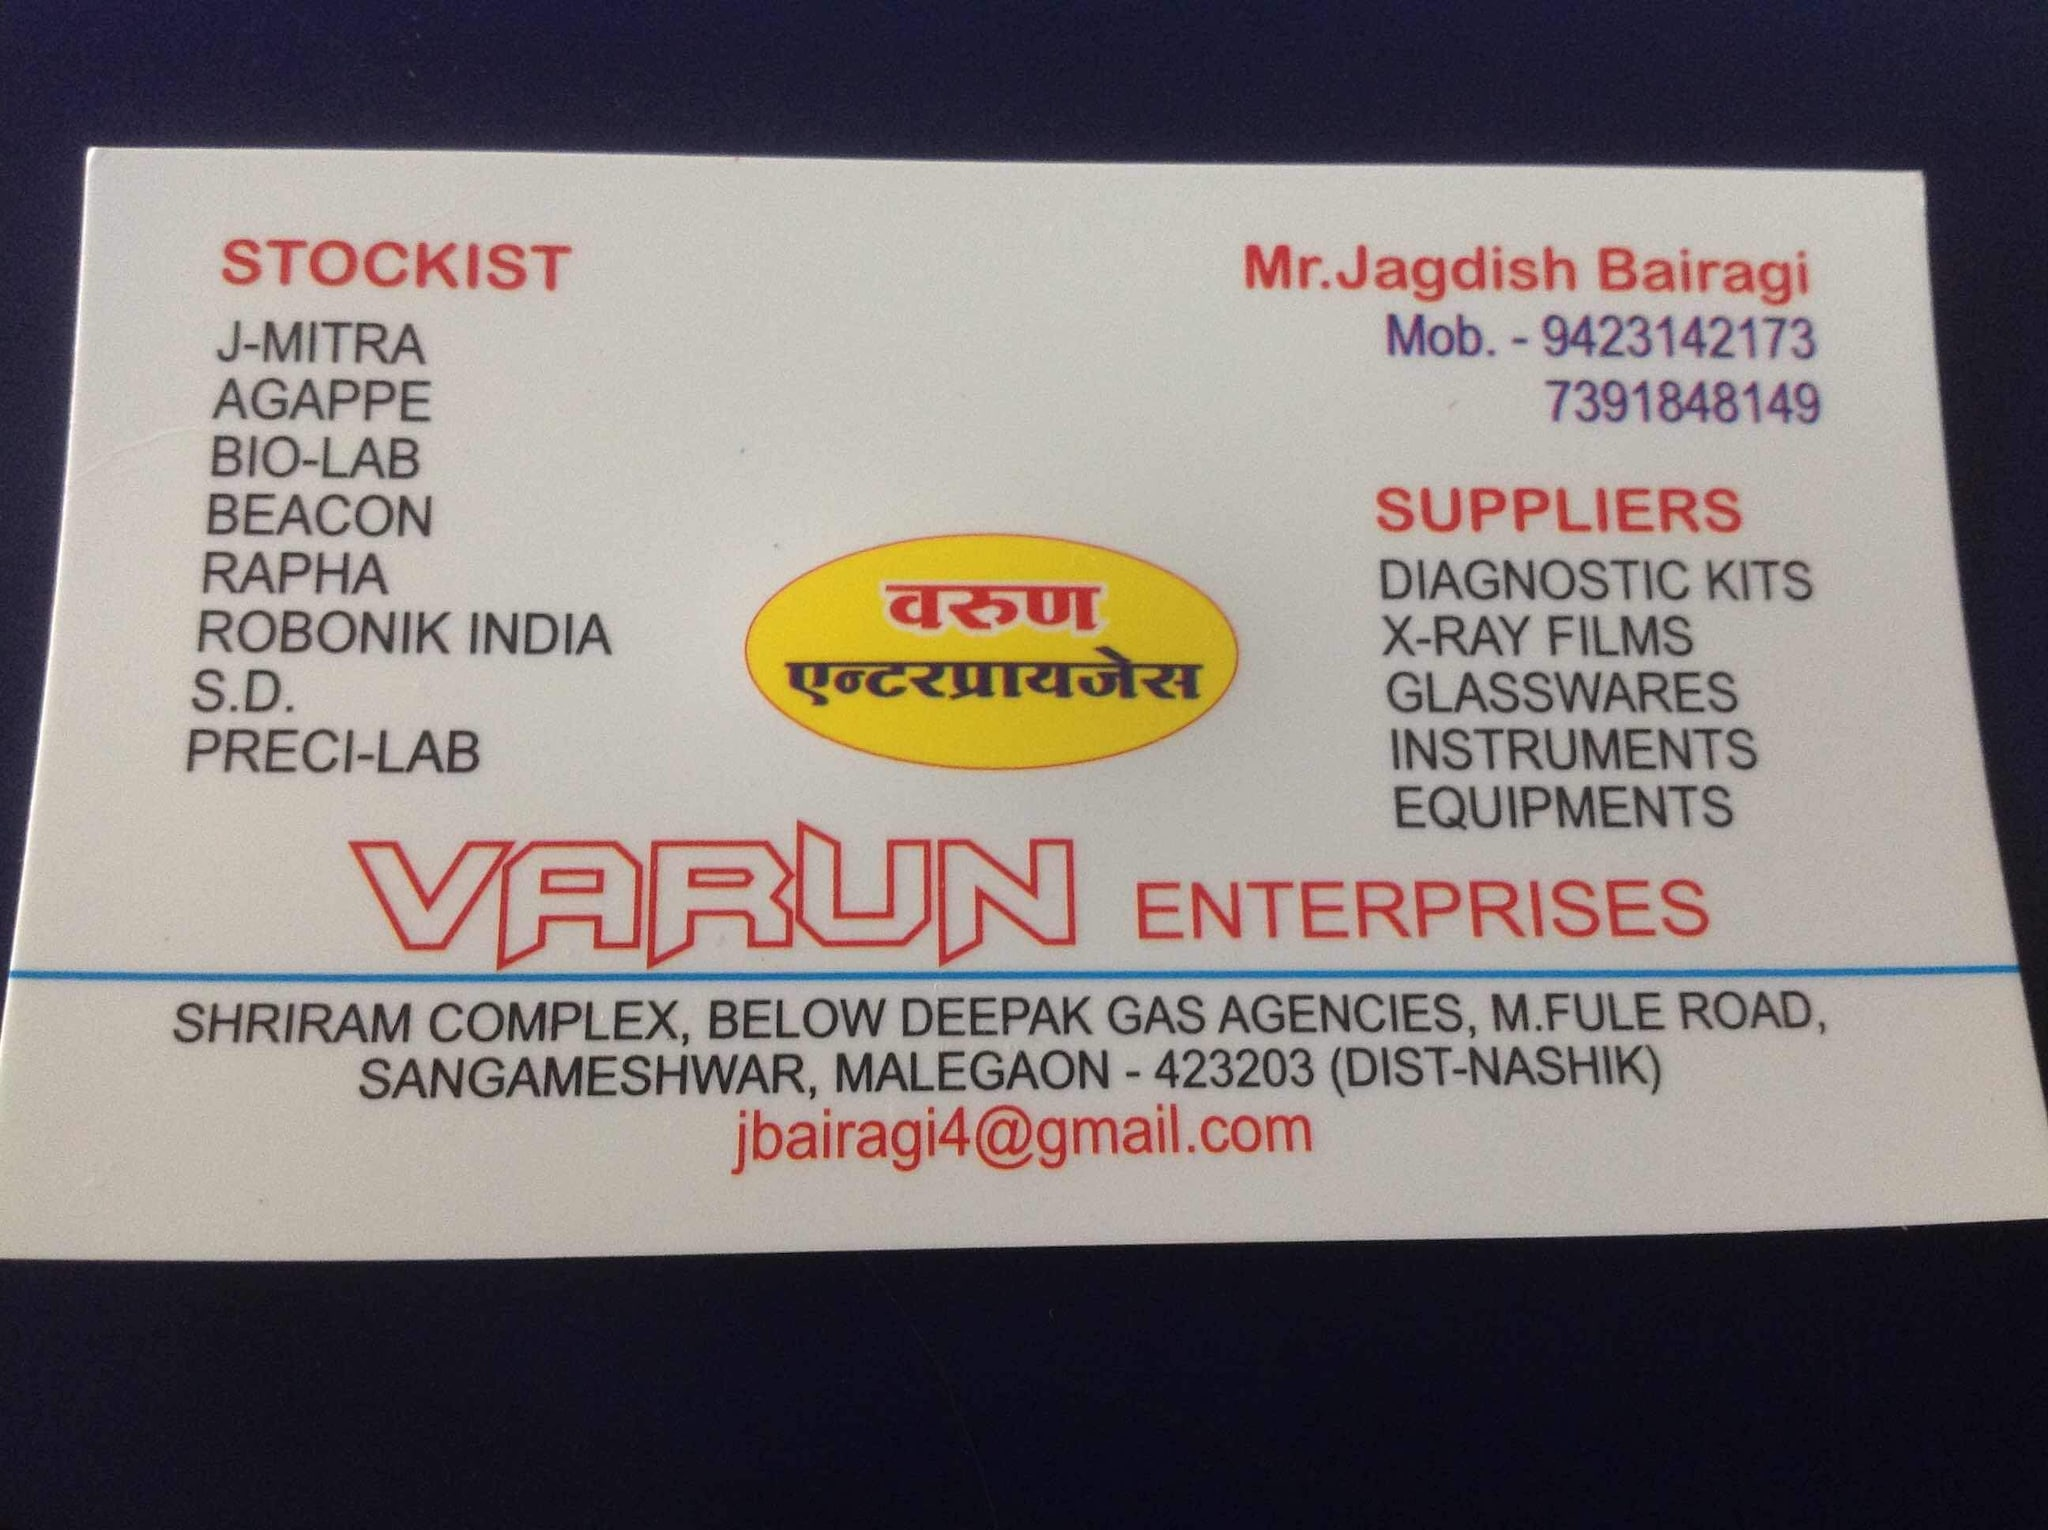 Top Surgical Equipment Distributors in Malegaon Stand - Best